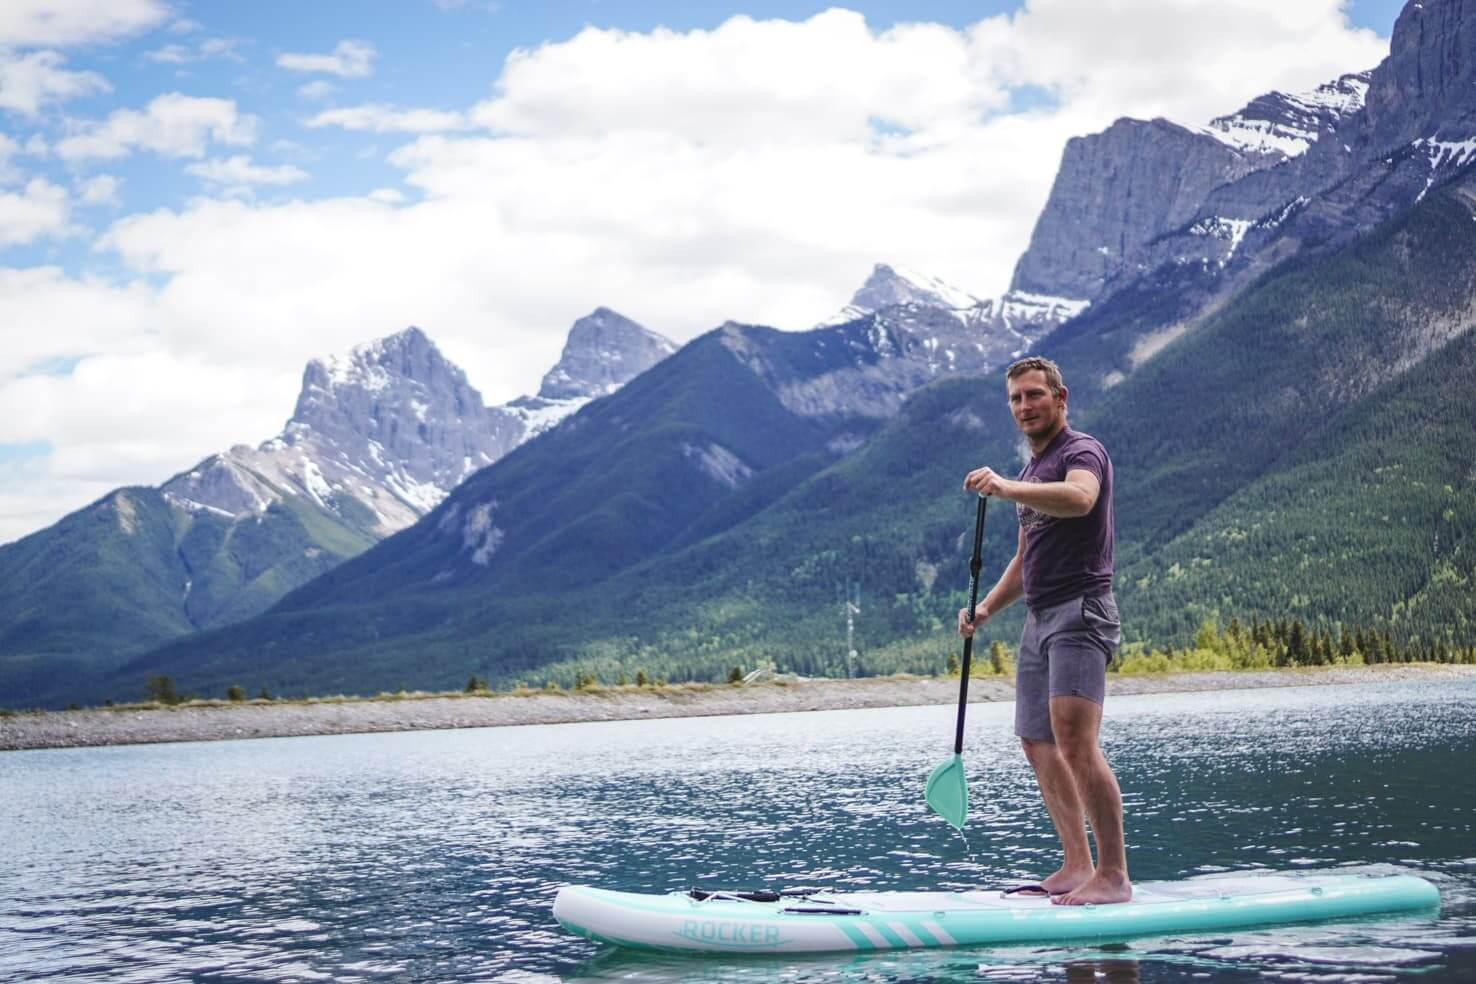 20 things to do in Canmore - stand up paddleboard on Rundle Forebay